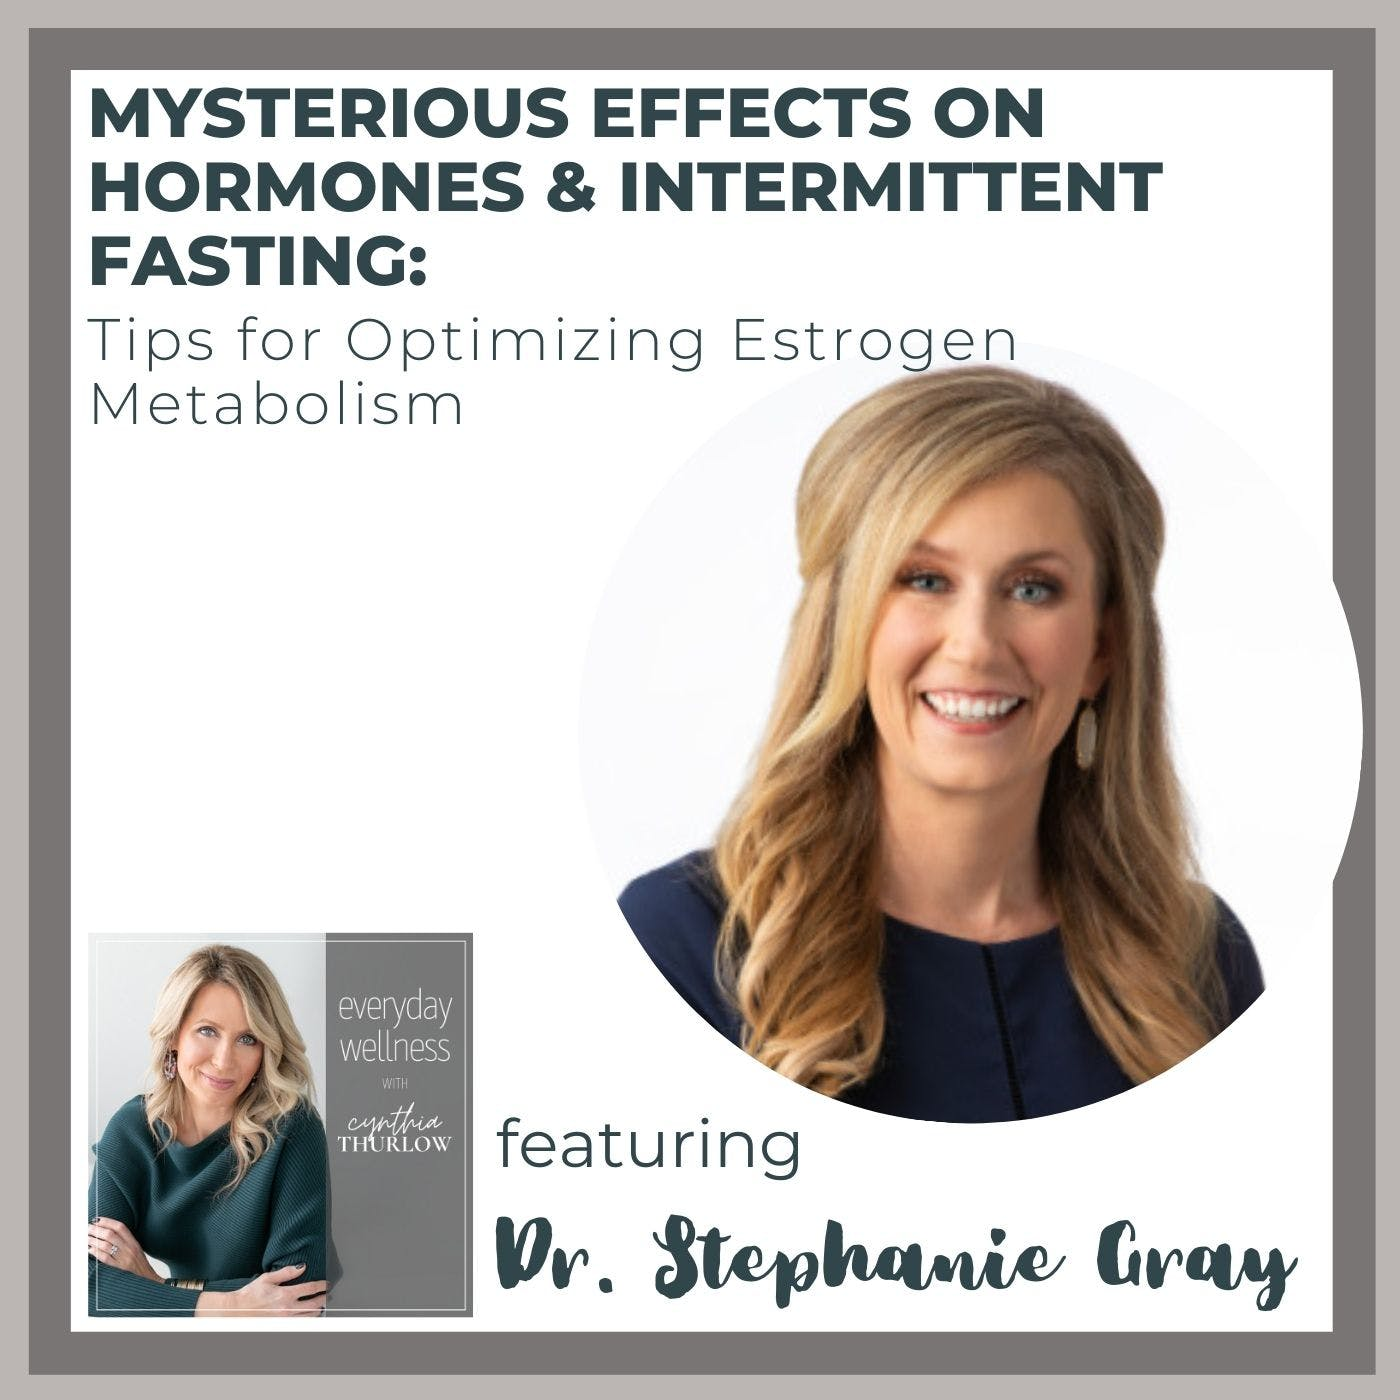 Ep. 156 Mysterious Effects On Hormones & Intermittent Fasting: Tips for Optimizing Estrogen Metabolism with Dr. Stephanie Gray